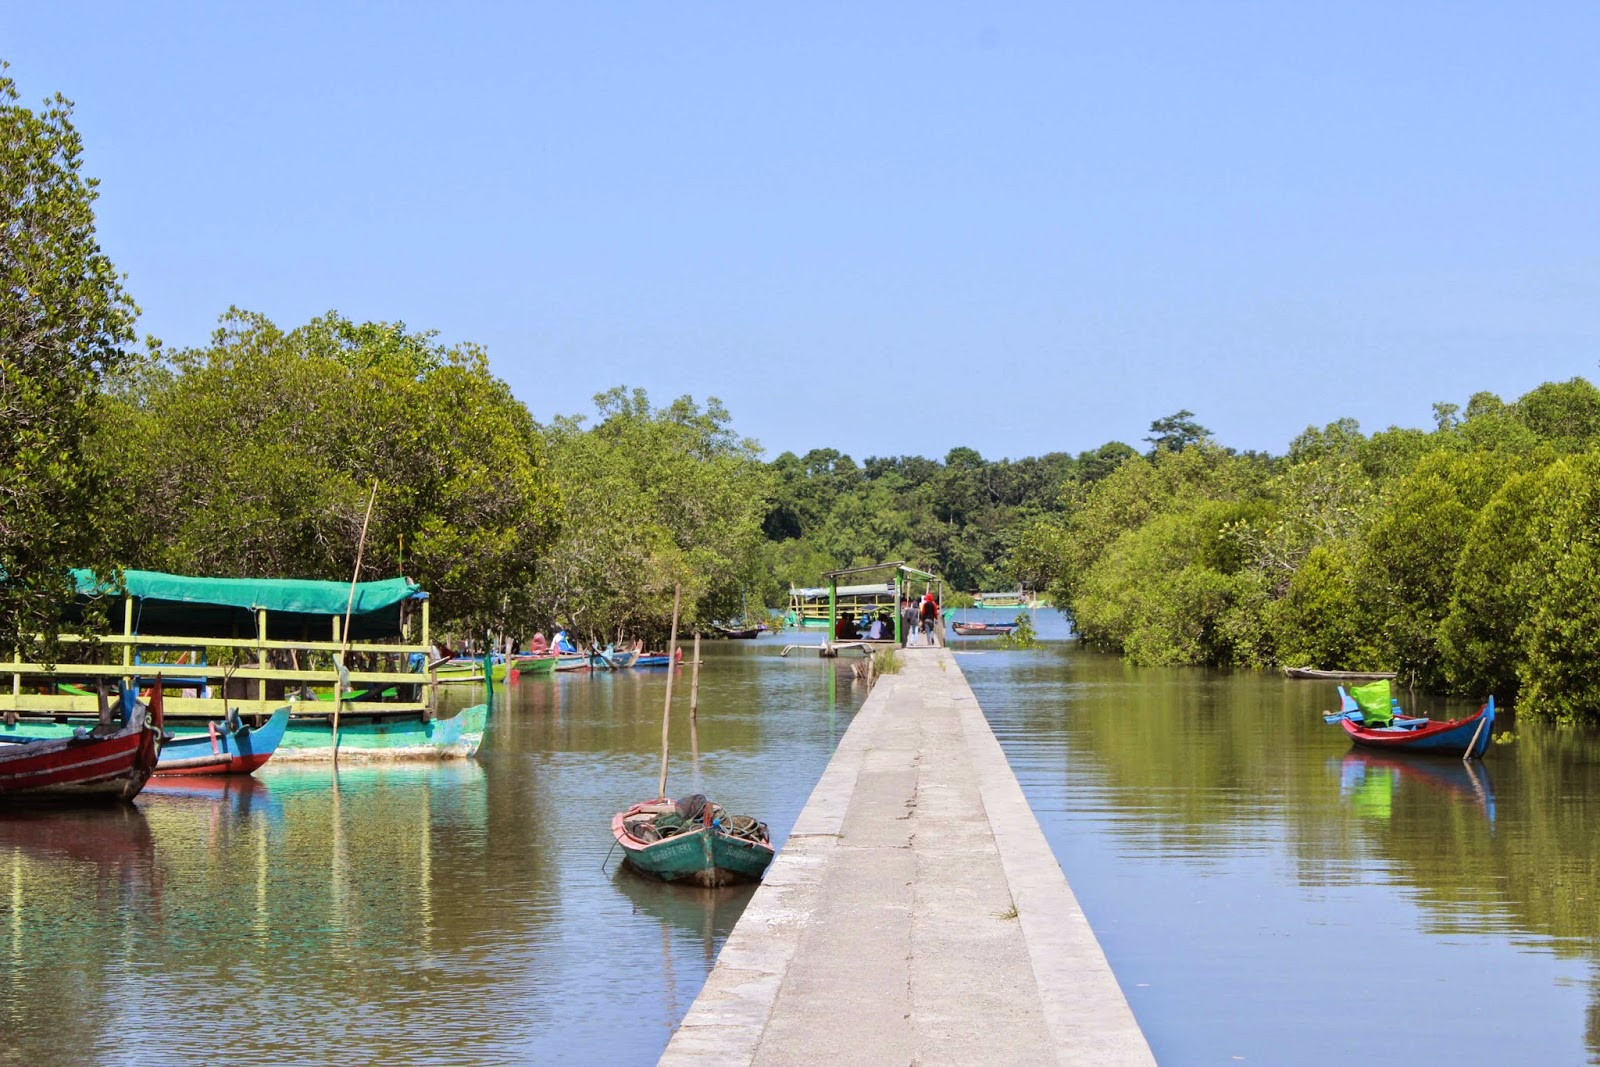 Bedul Mangrove Forest is still part of Alas Purwo National Park area